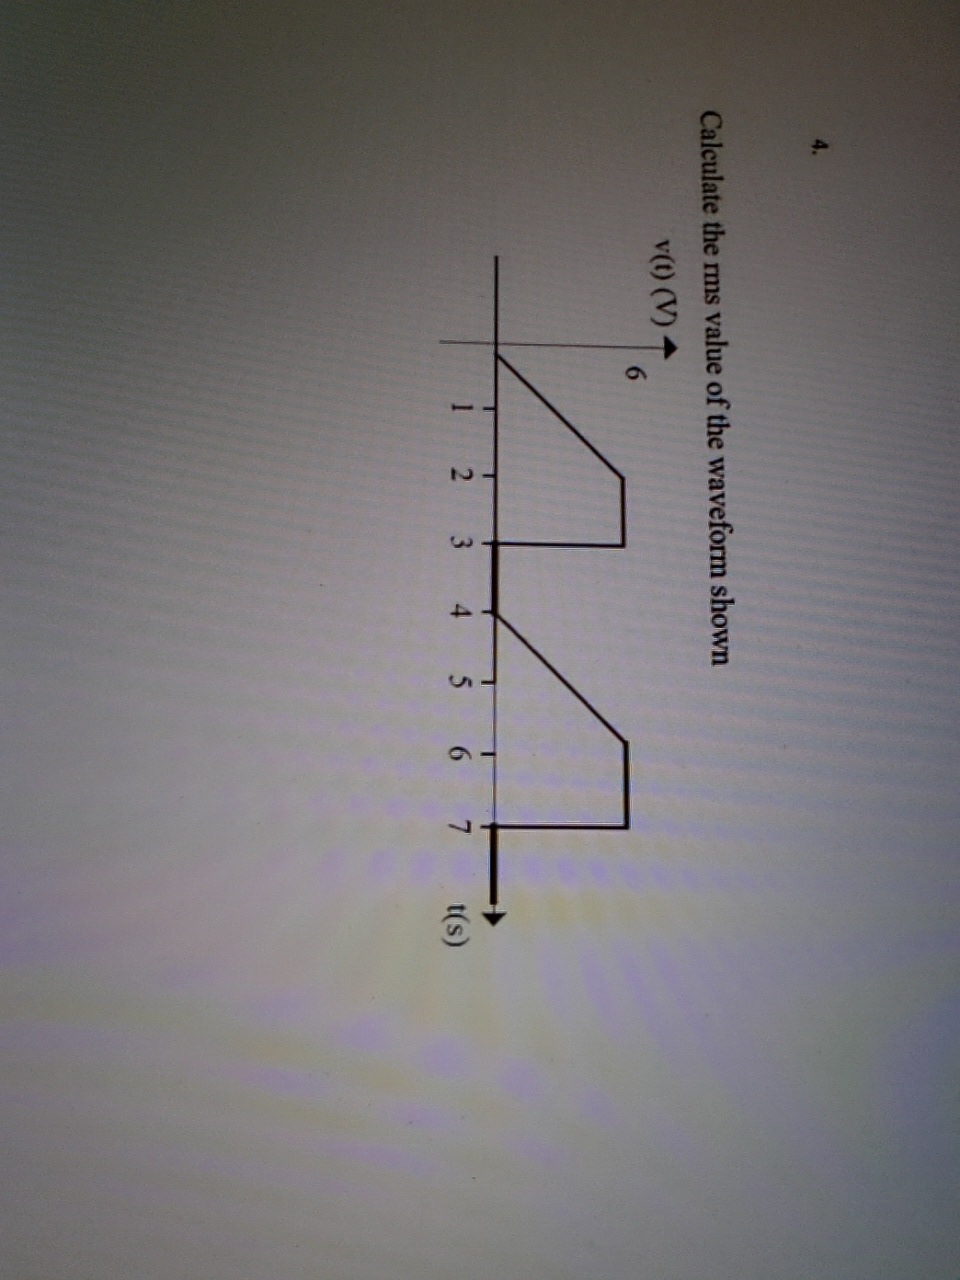 Calculate the rms value of the waveform shown